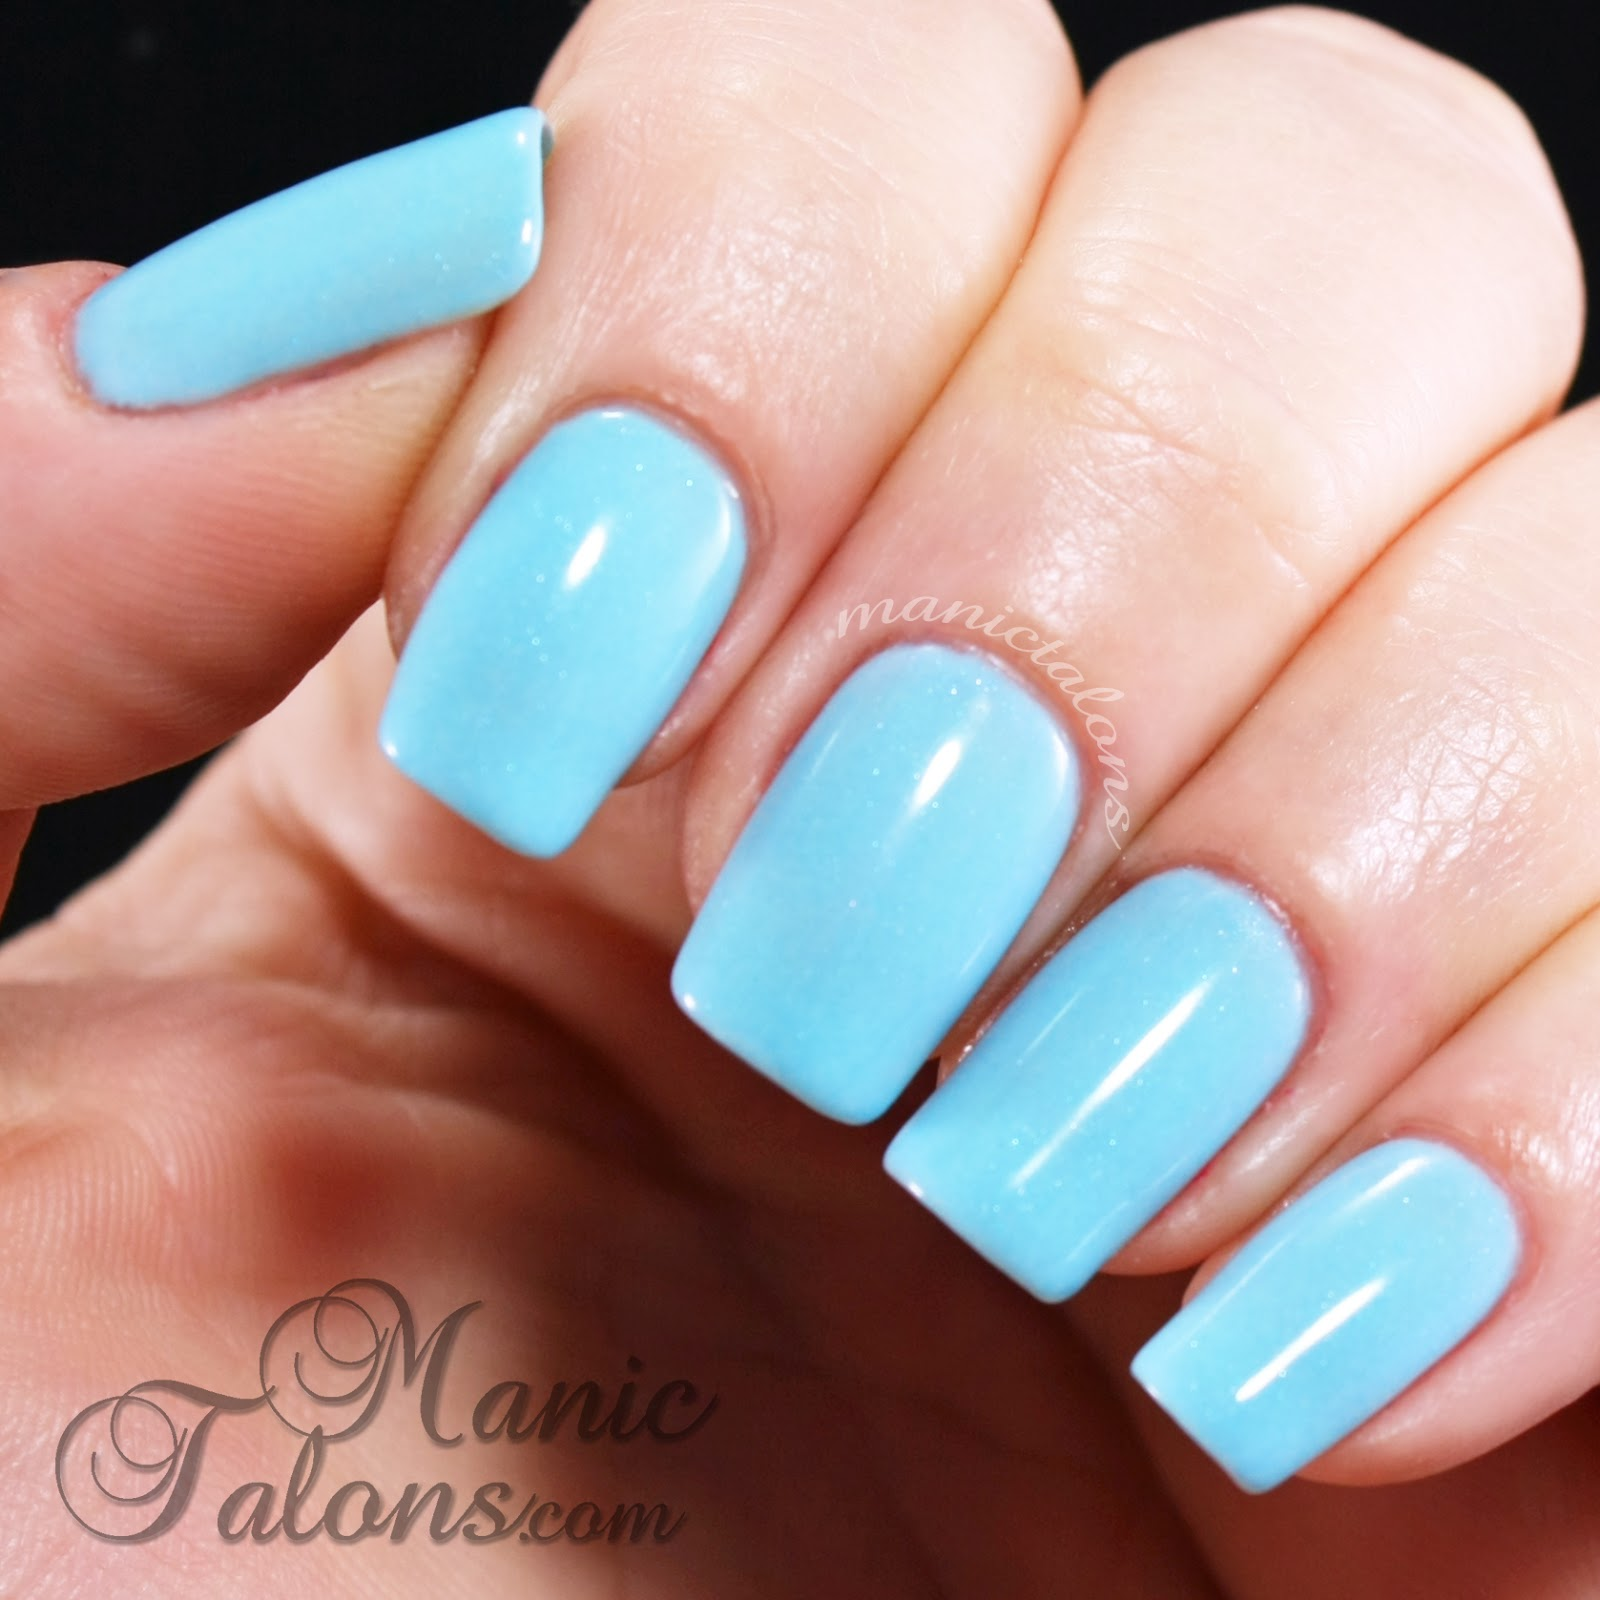 Manic Talons Nail Design: March 2014